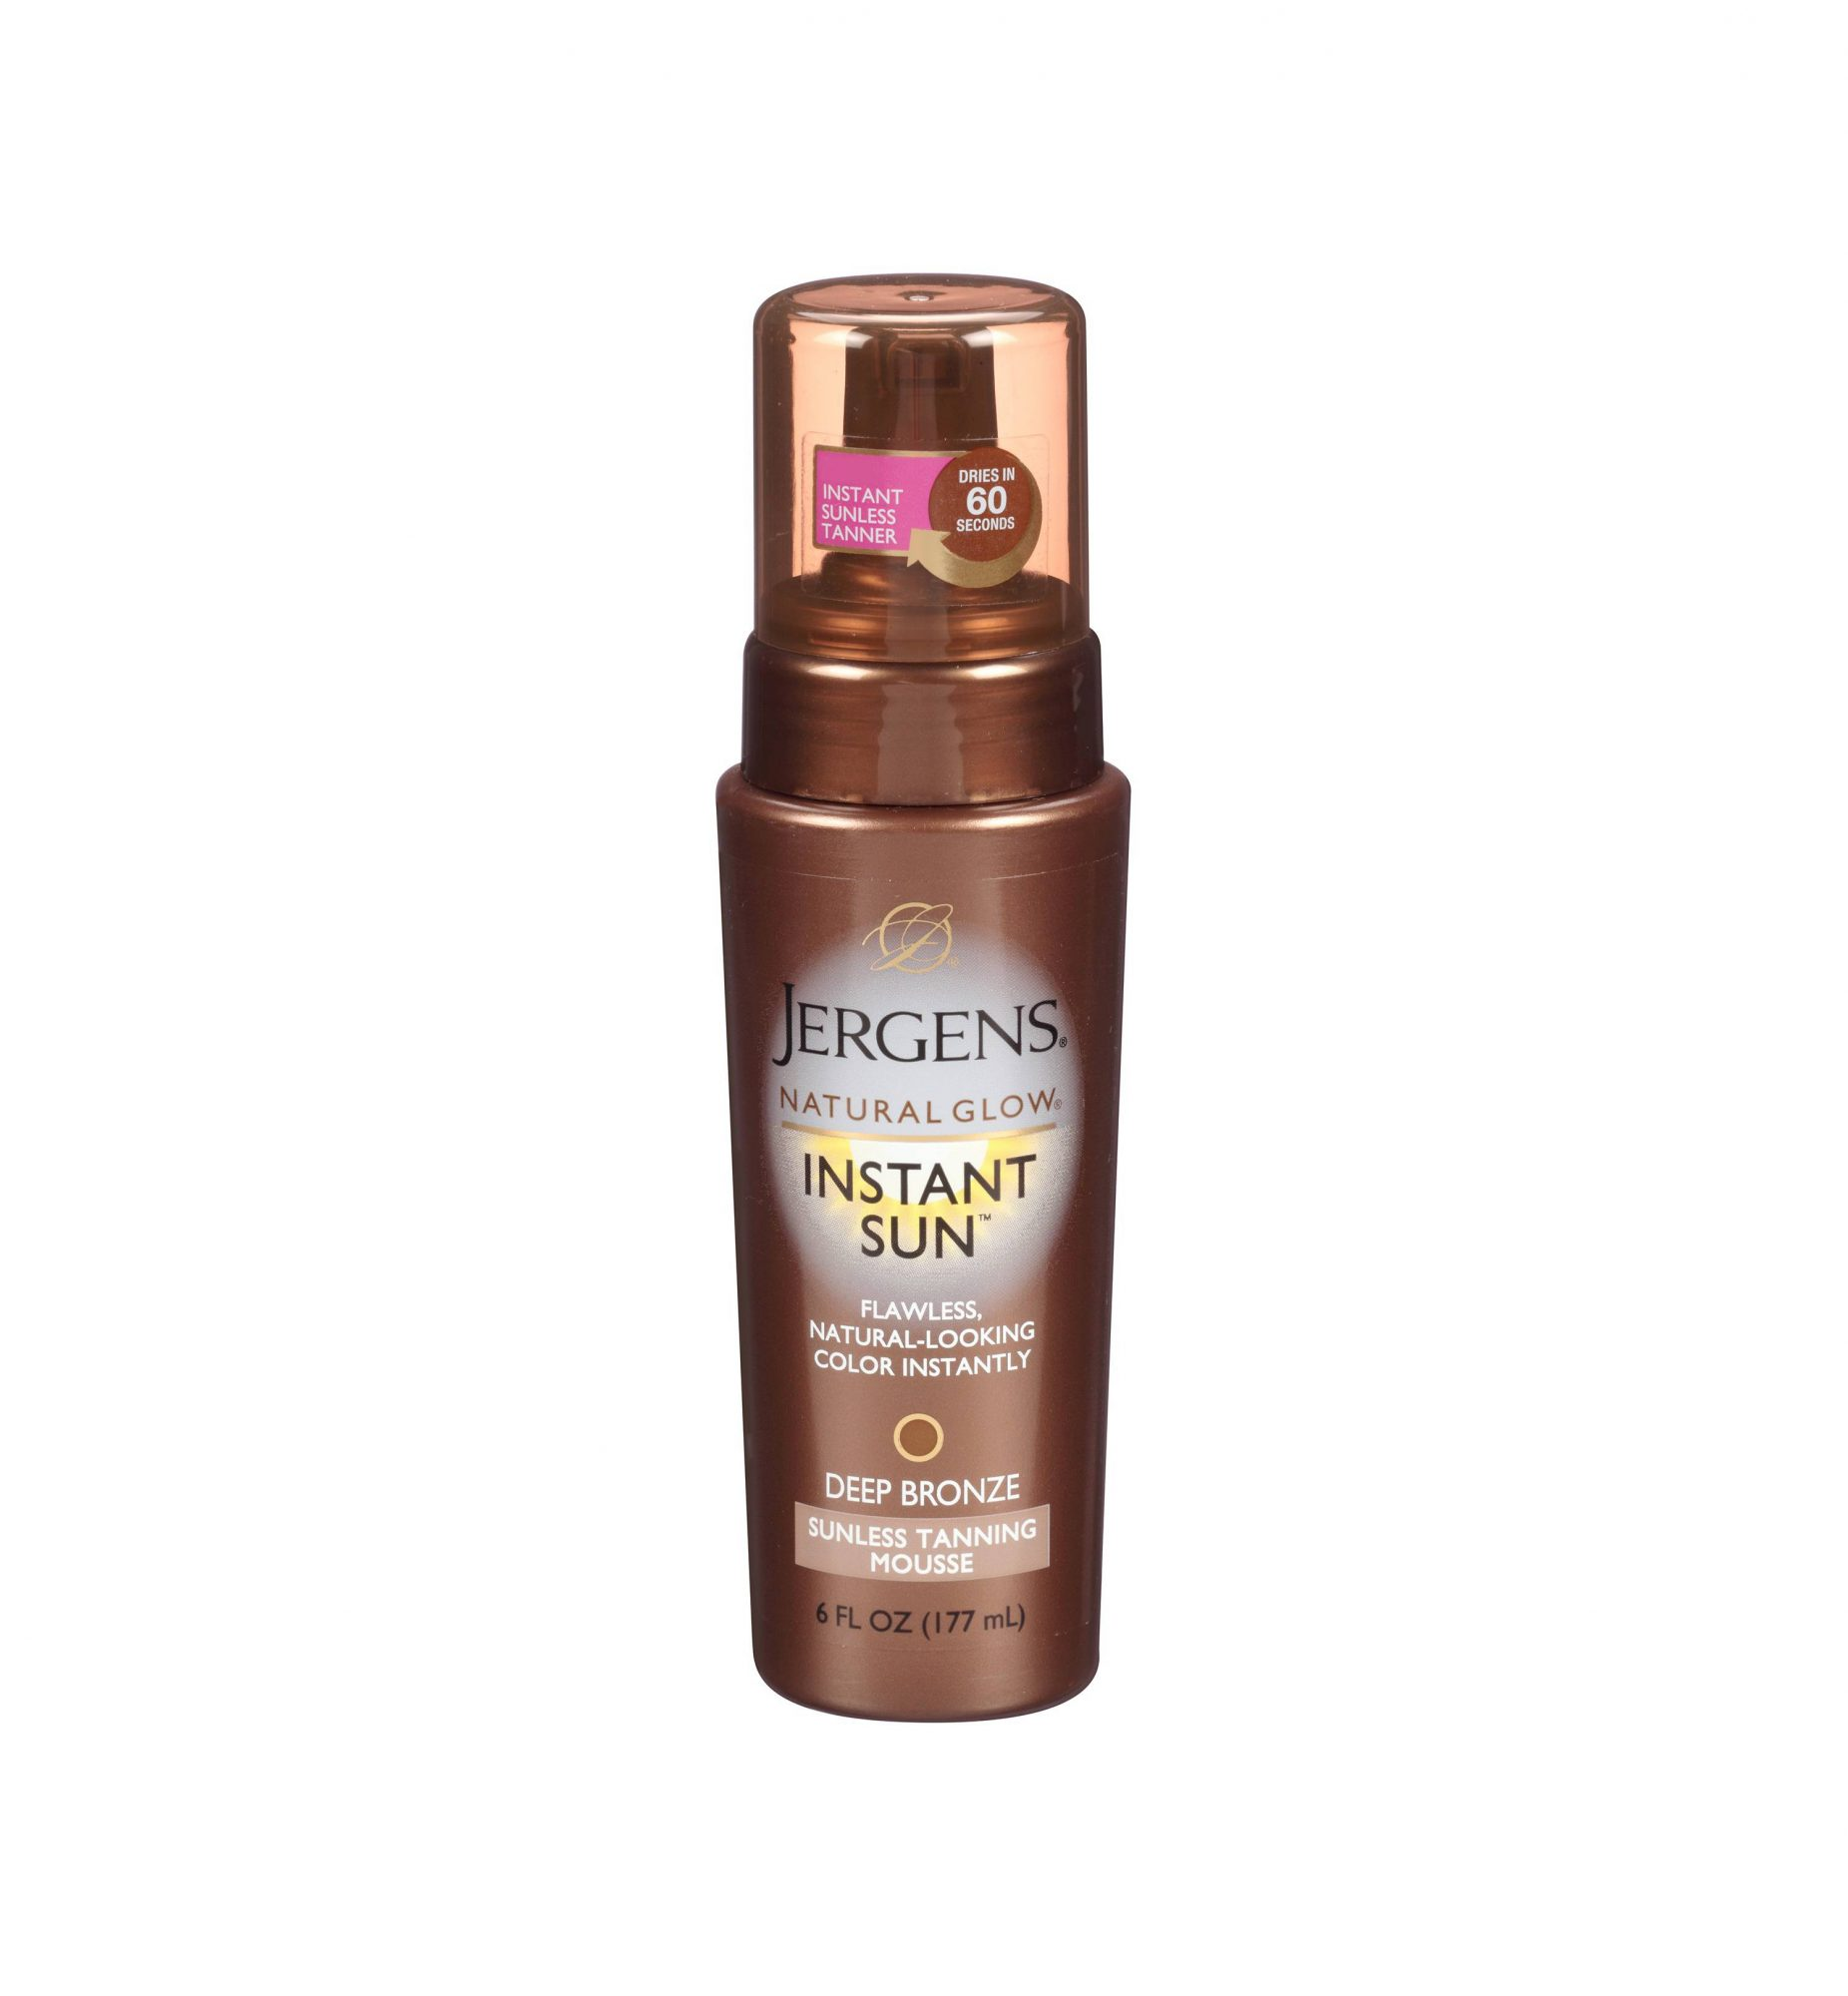 Jergens Natural Glow Instant Sun Moisturizing Lotion